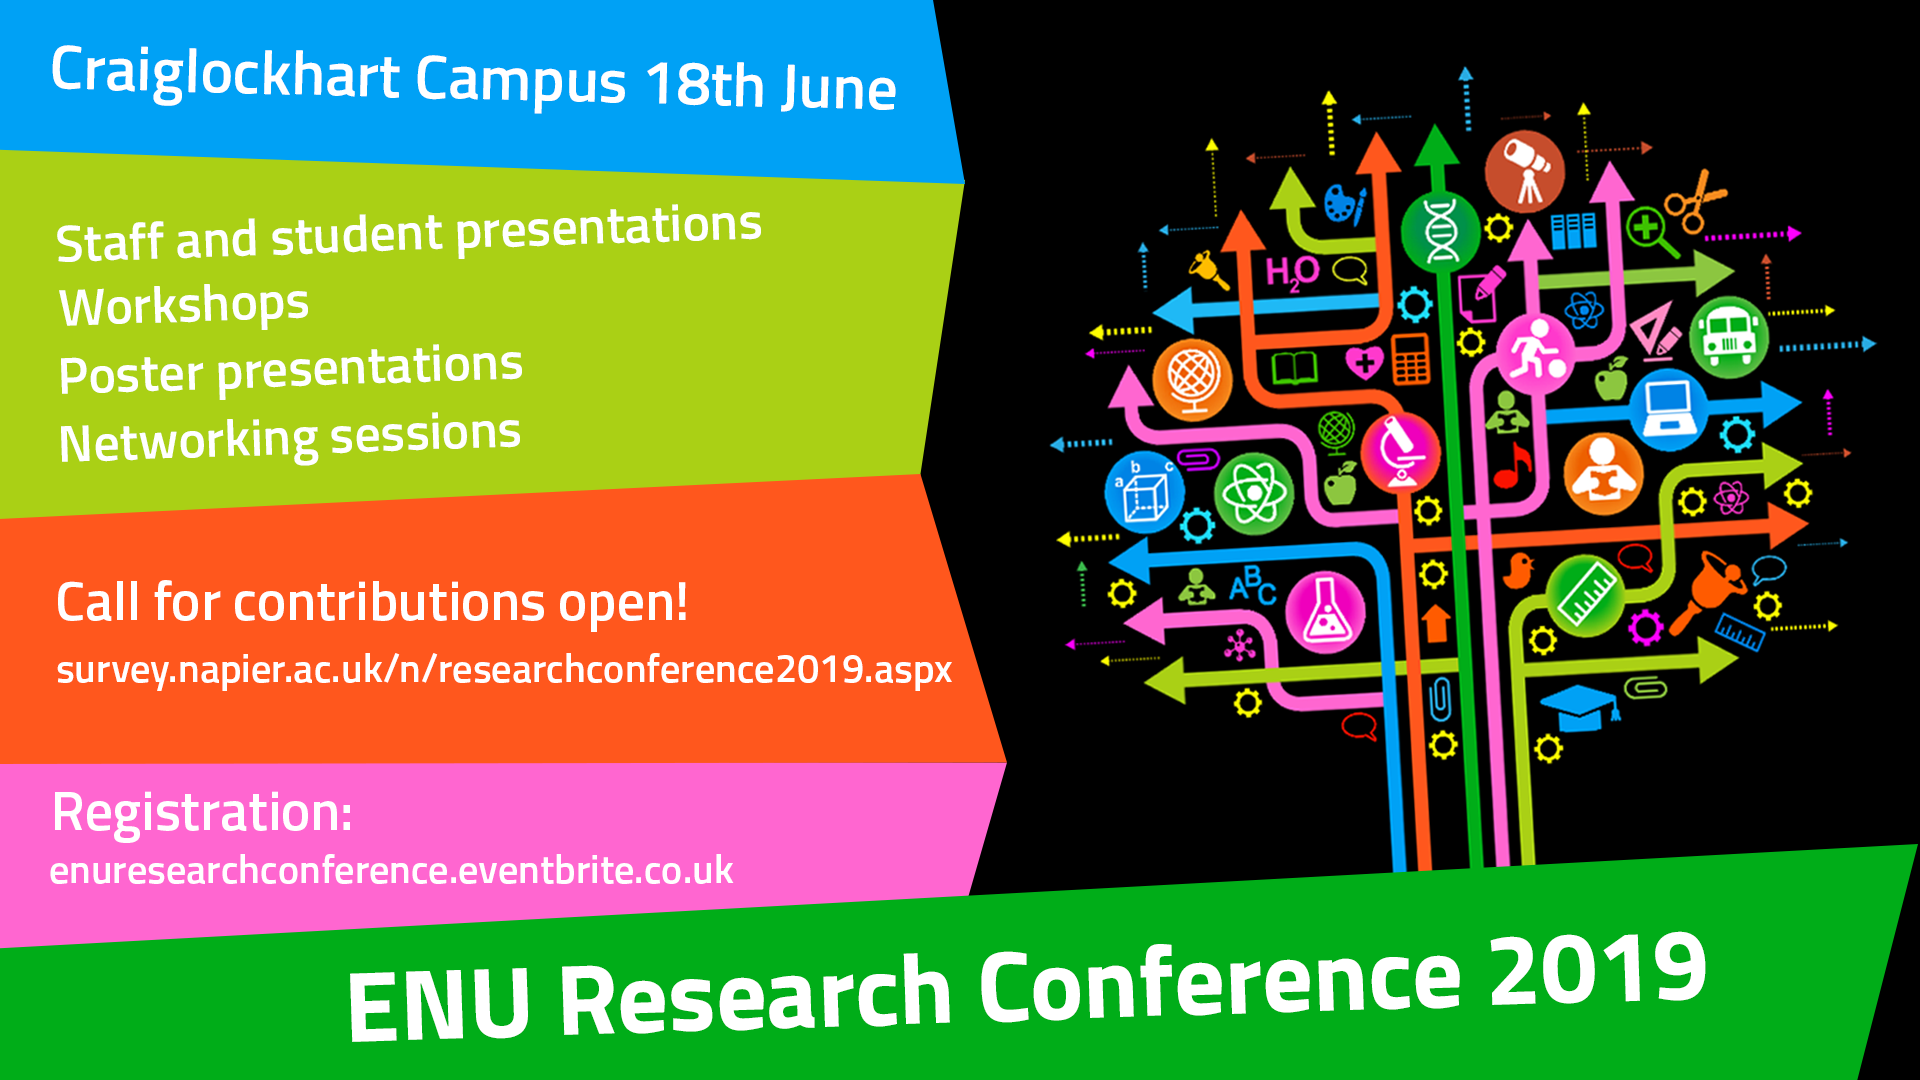 Edinburgh Napier University Research Conference 2019